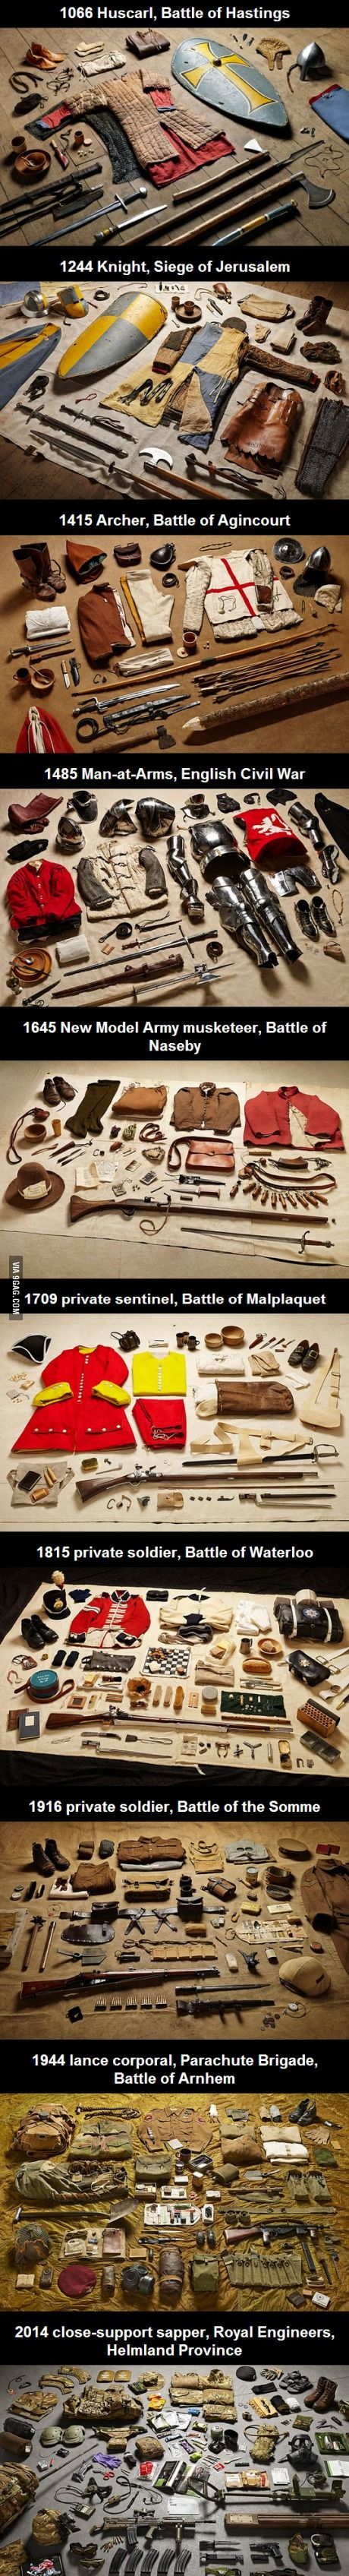 A soldier's gear throughout the ages #historyfacts